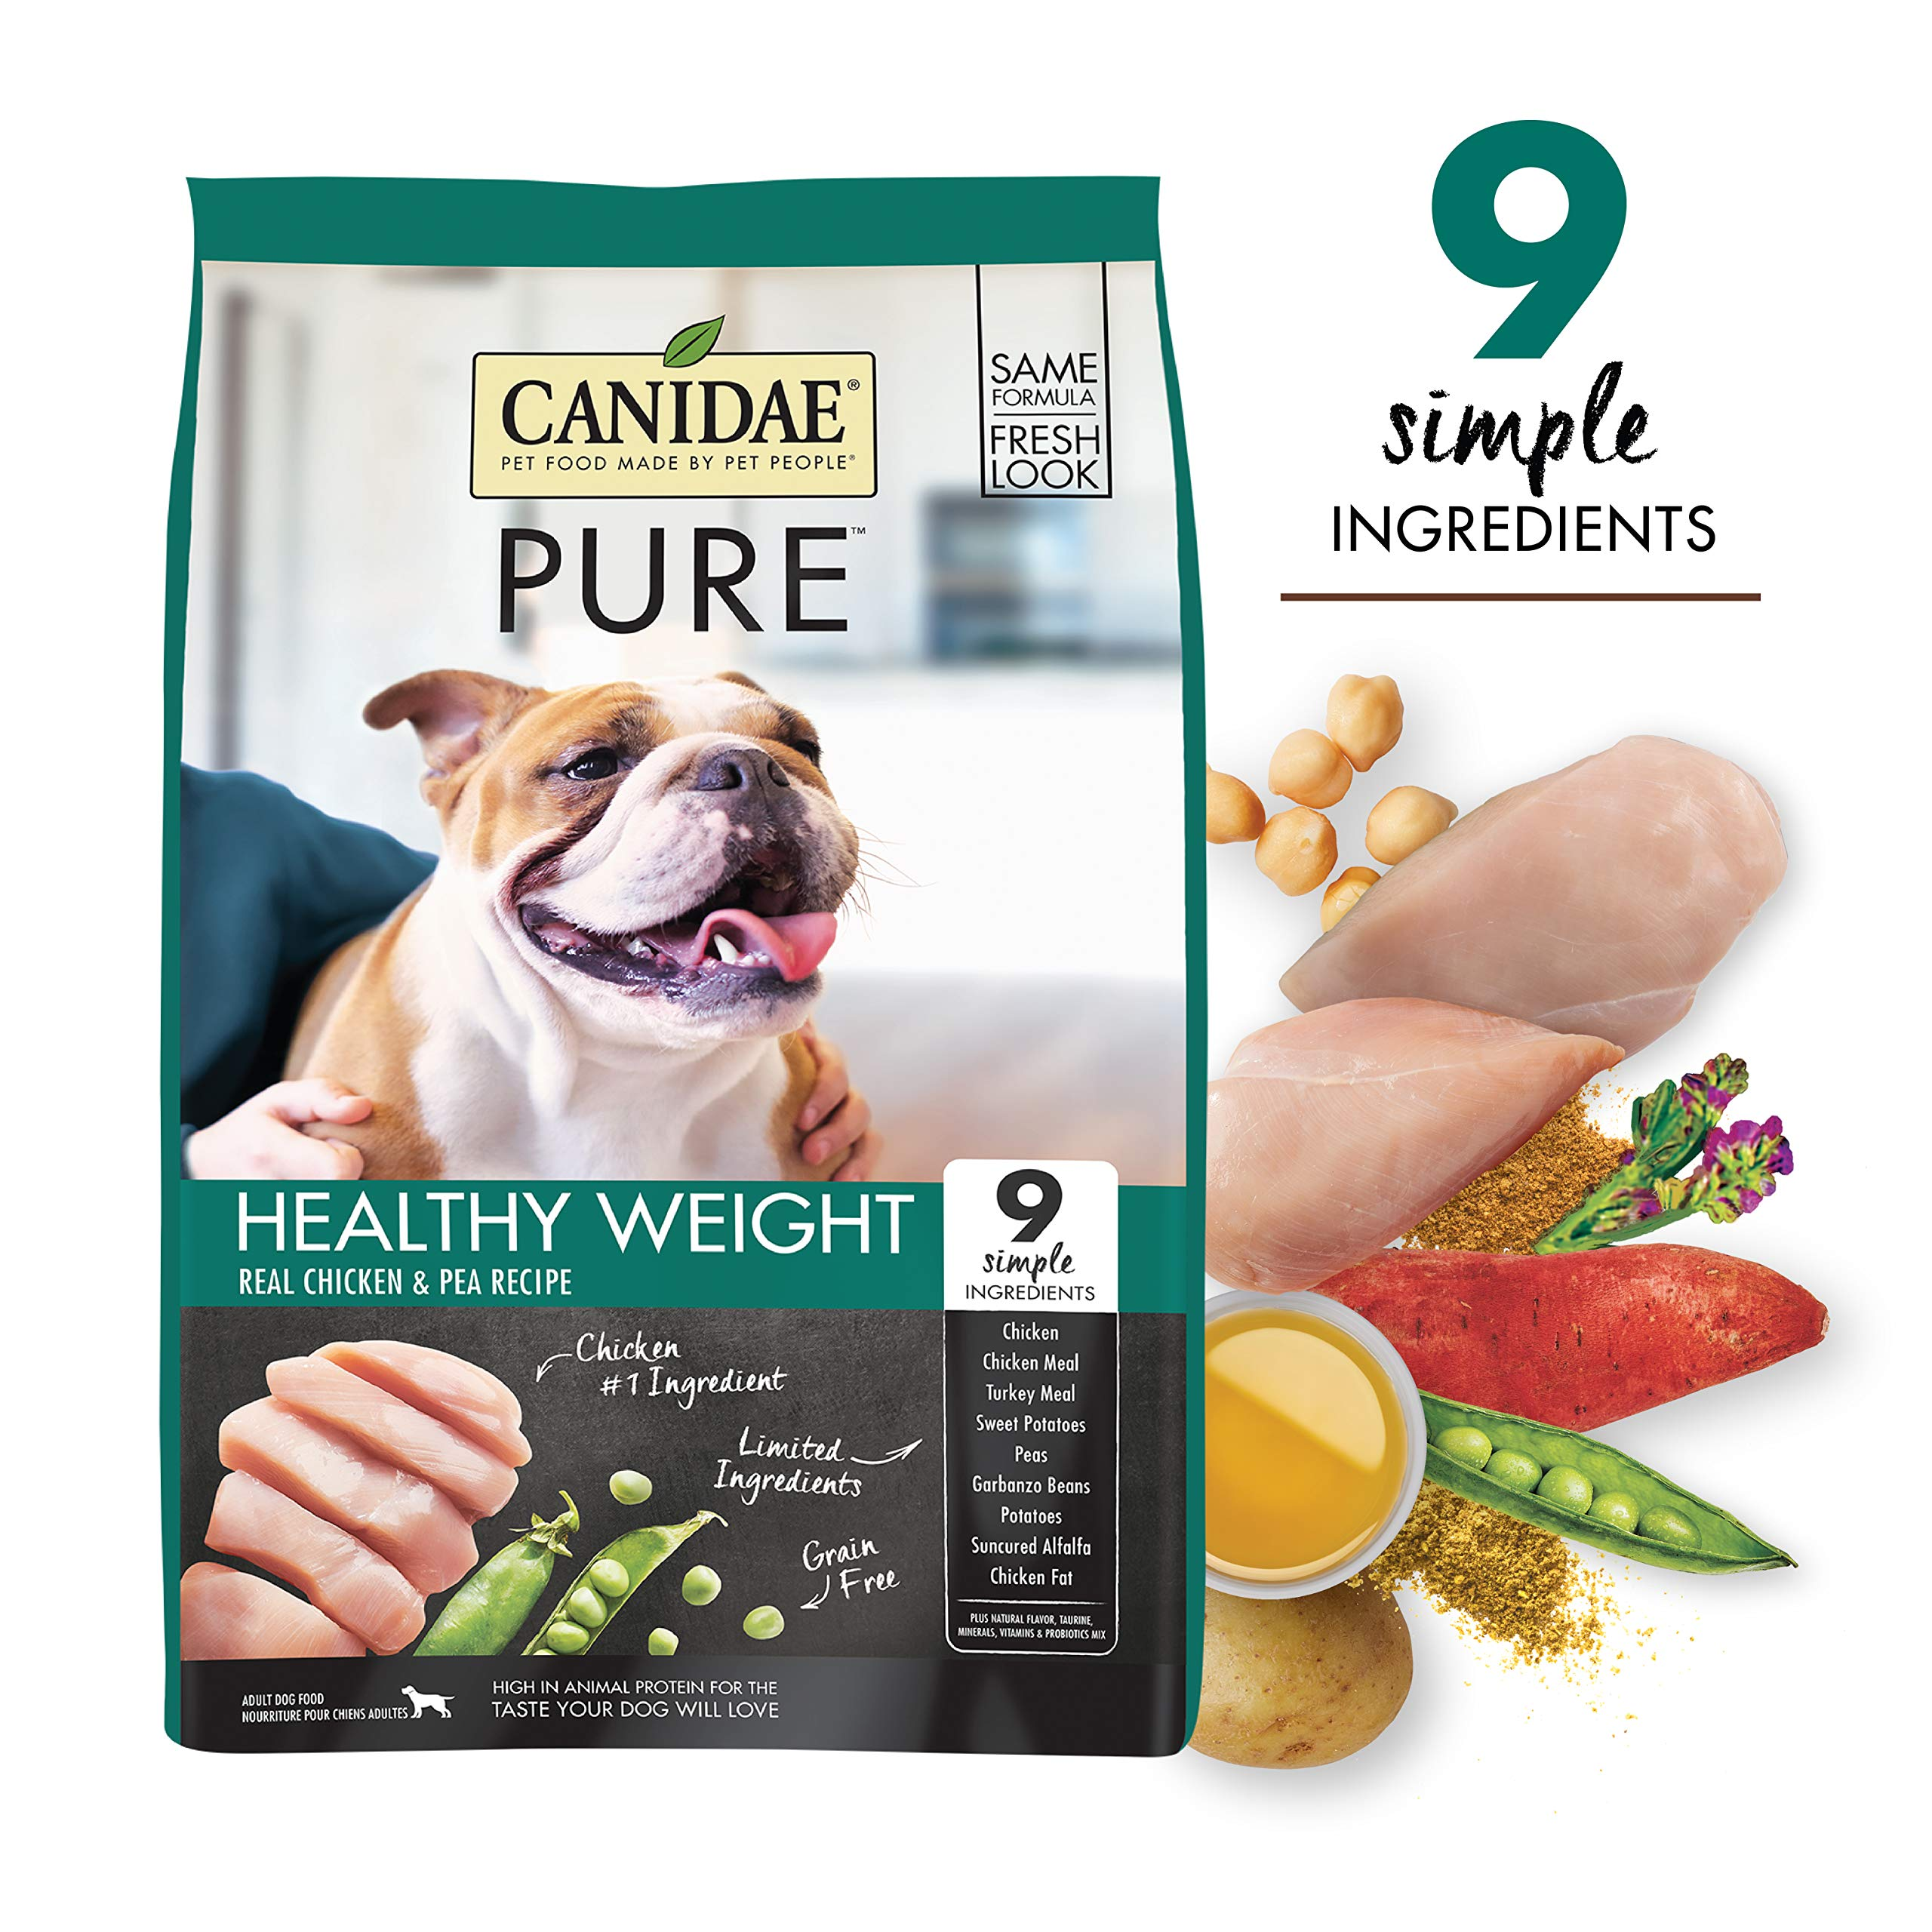 CANIDAE PURE Weight Management, Limited Ingredient Grain Free Premium Dry Dog Food by CANIDAE